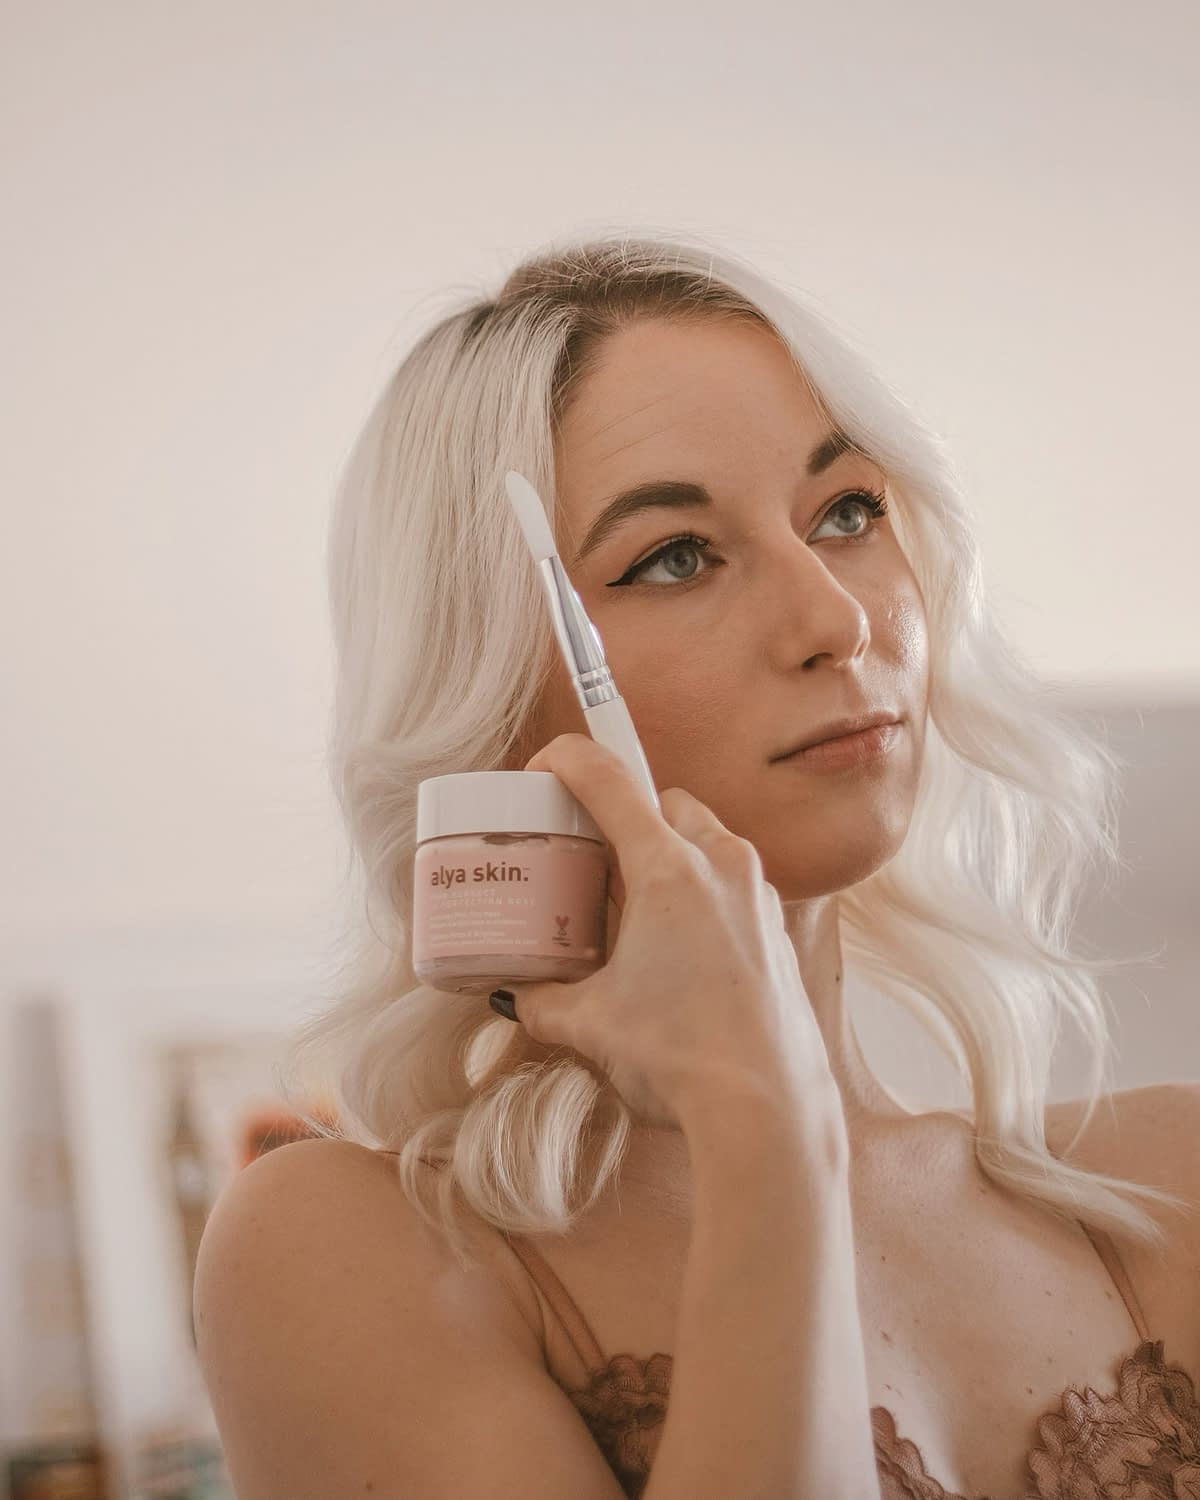 Ayla skin play clay mask review by Nicole Rae